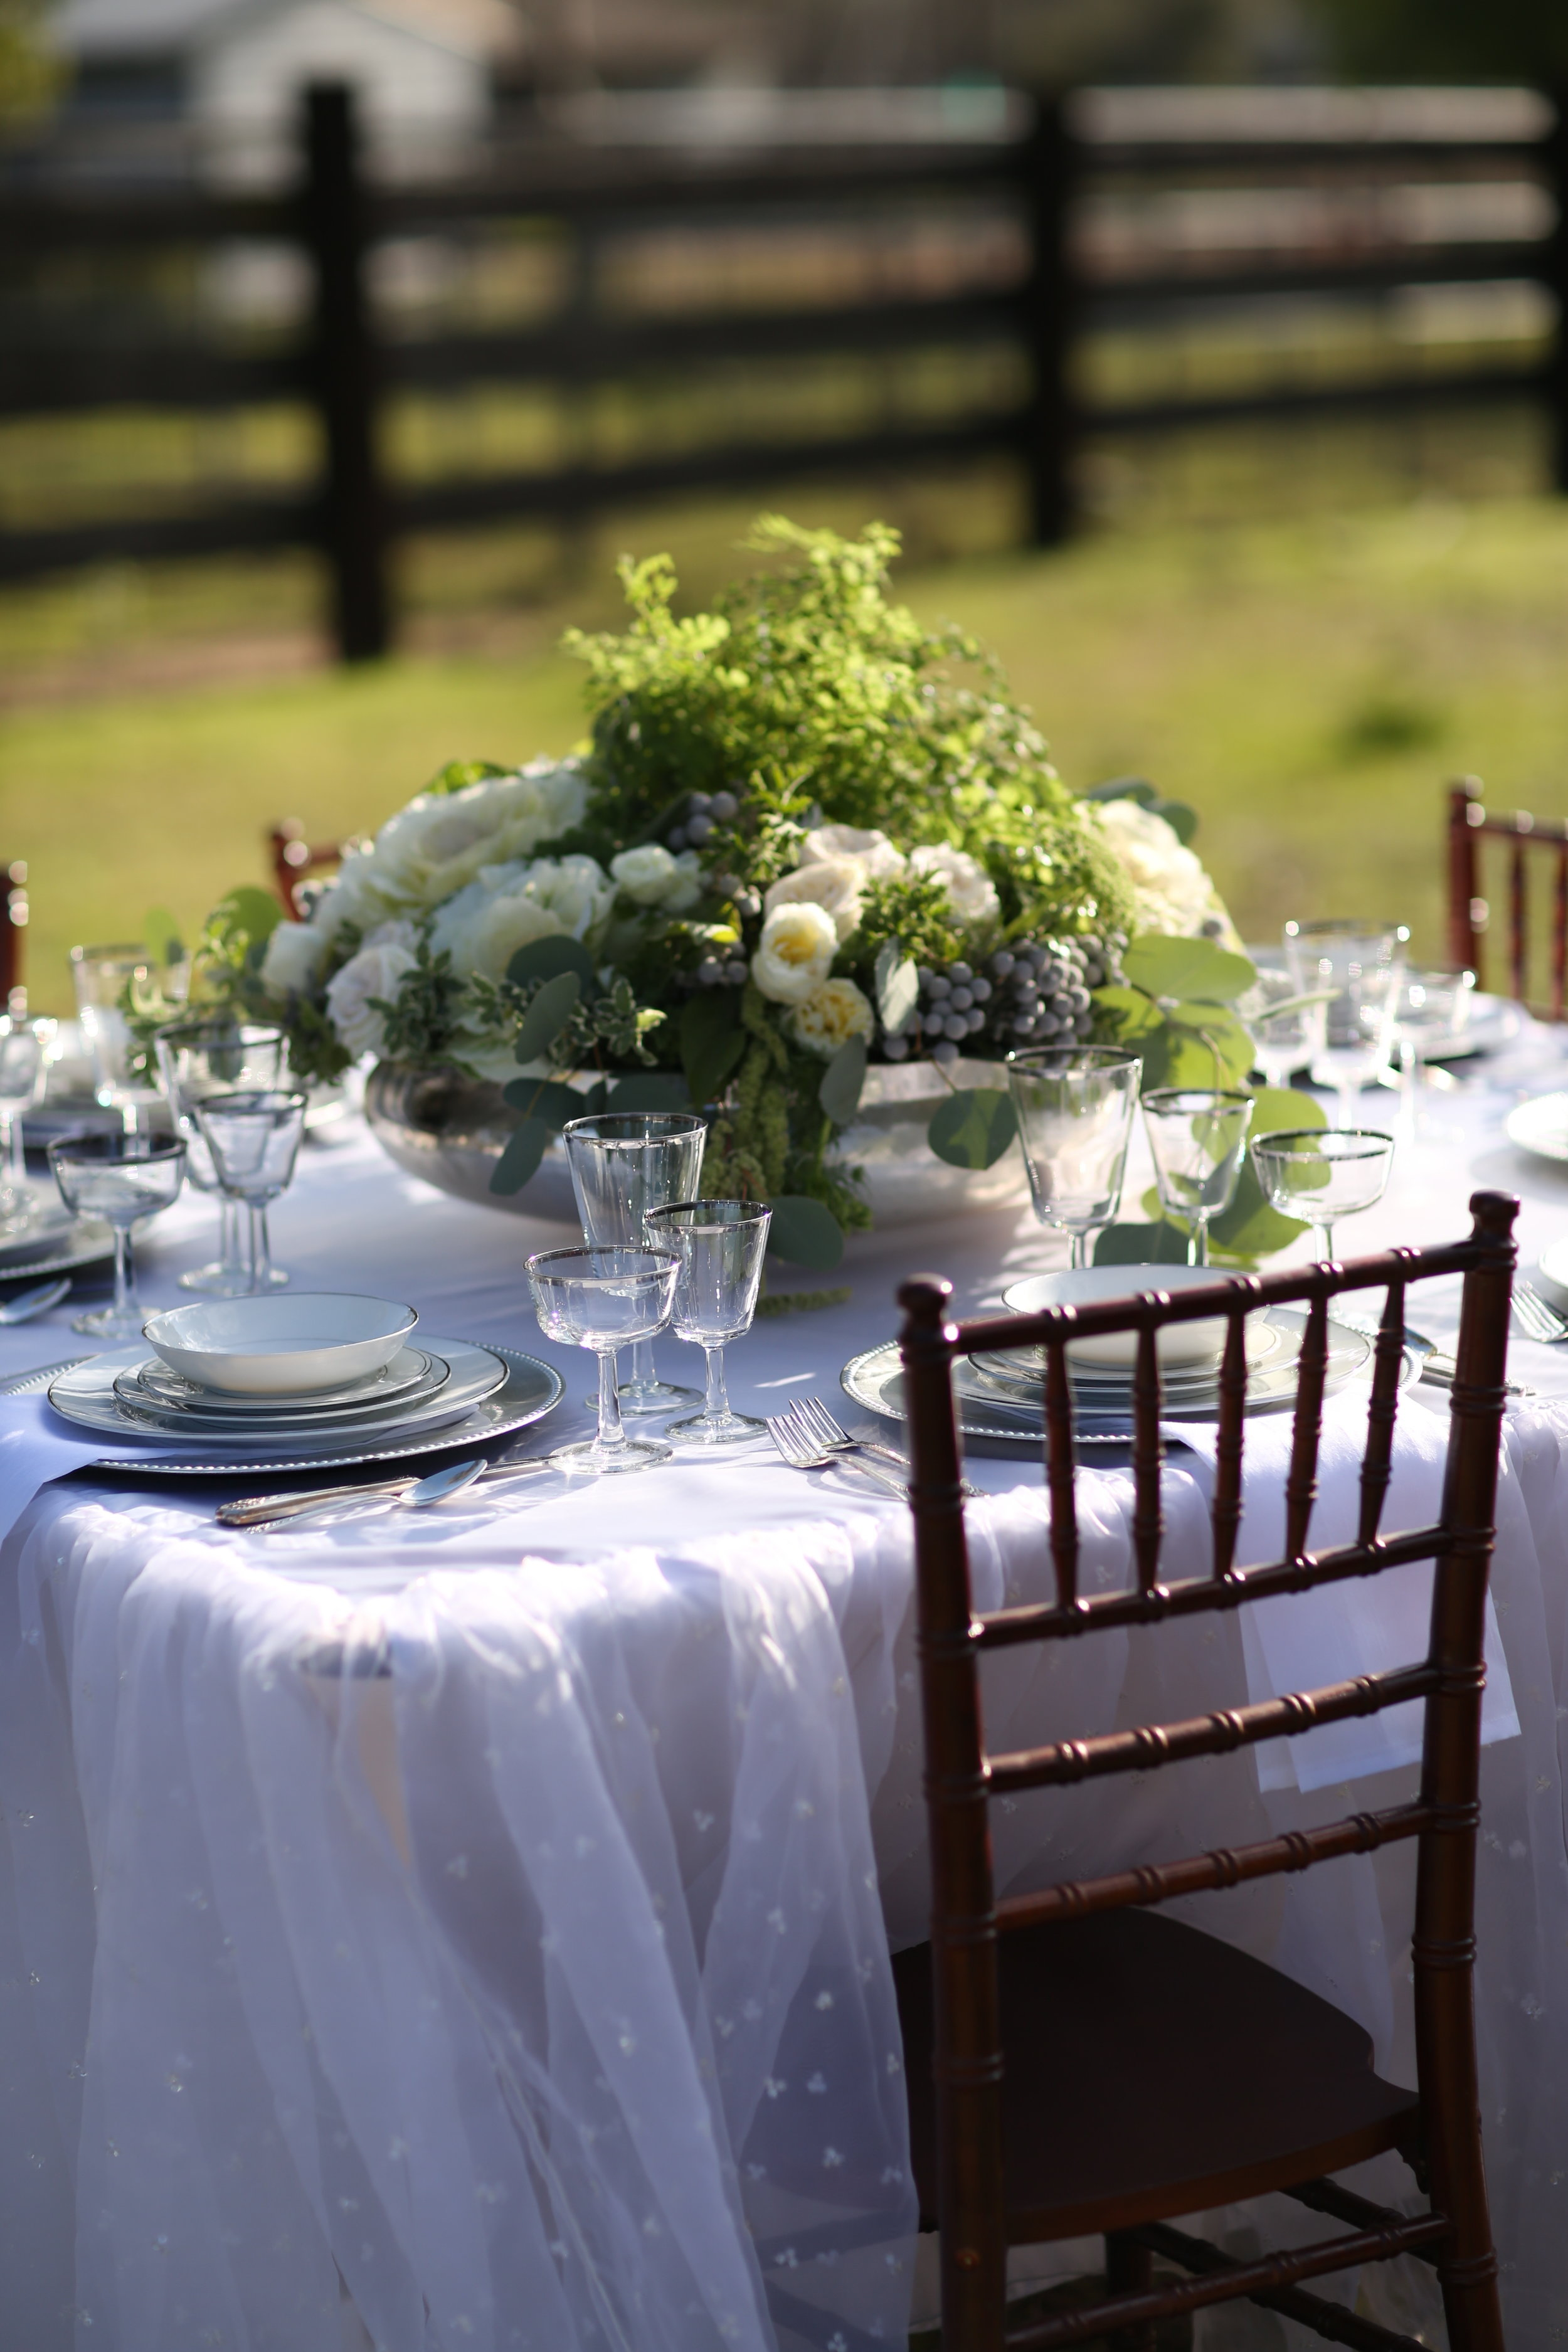 Silver charger plates with vintage china on a wedding table.